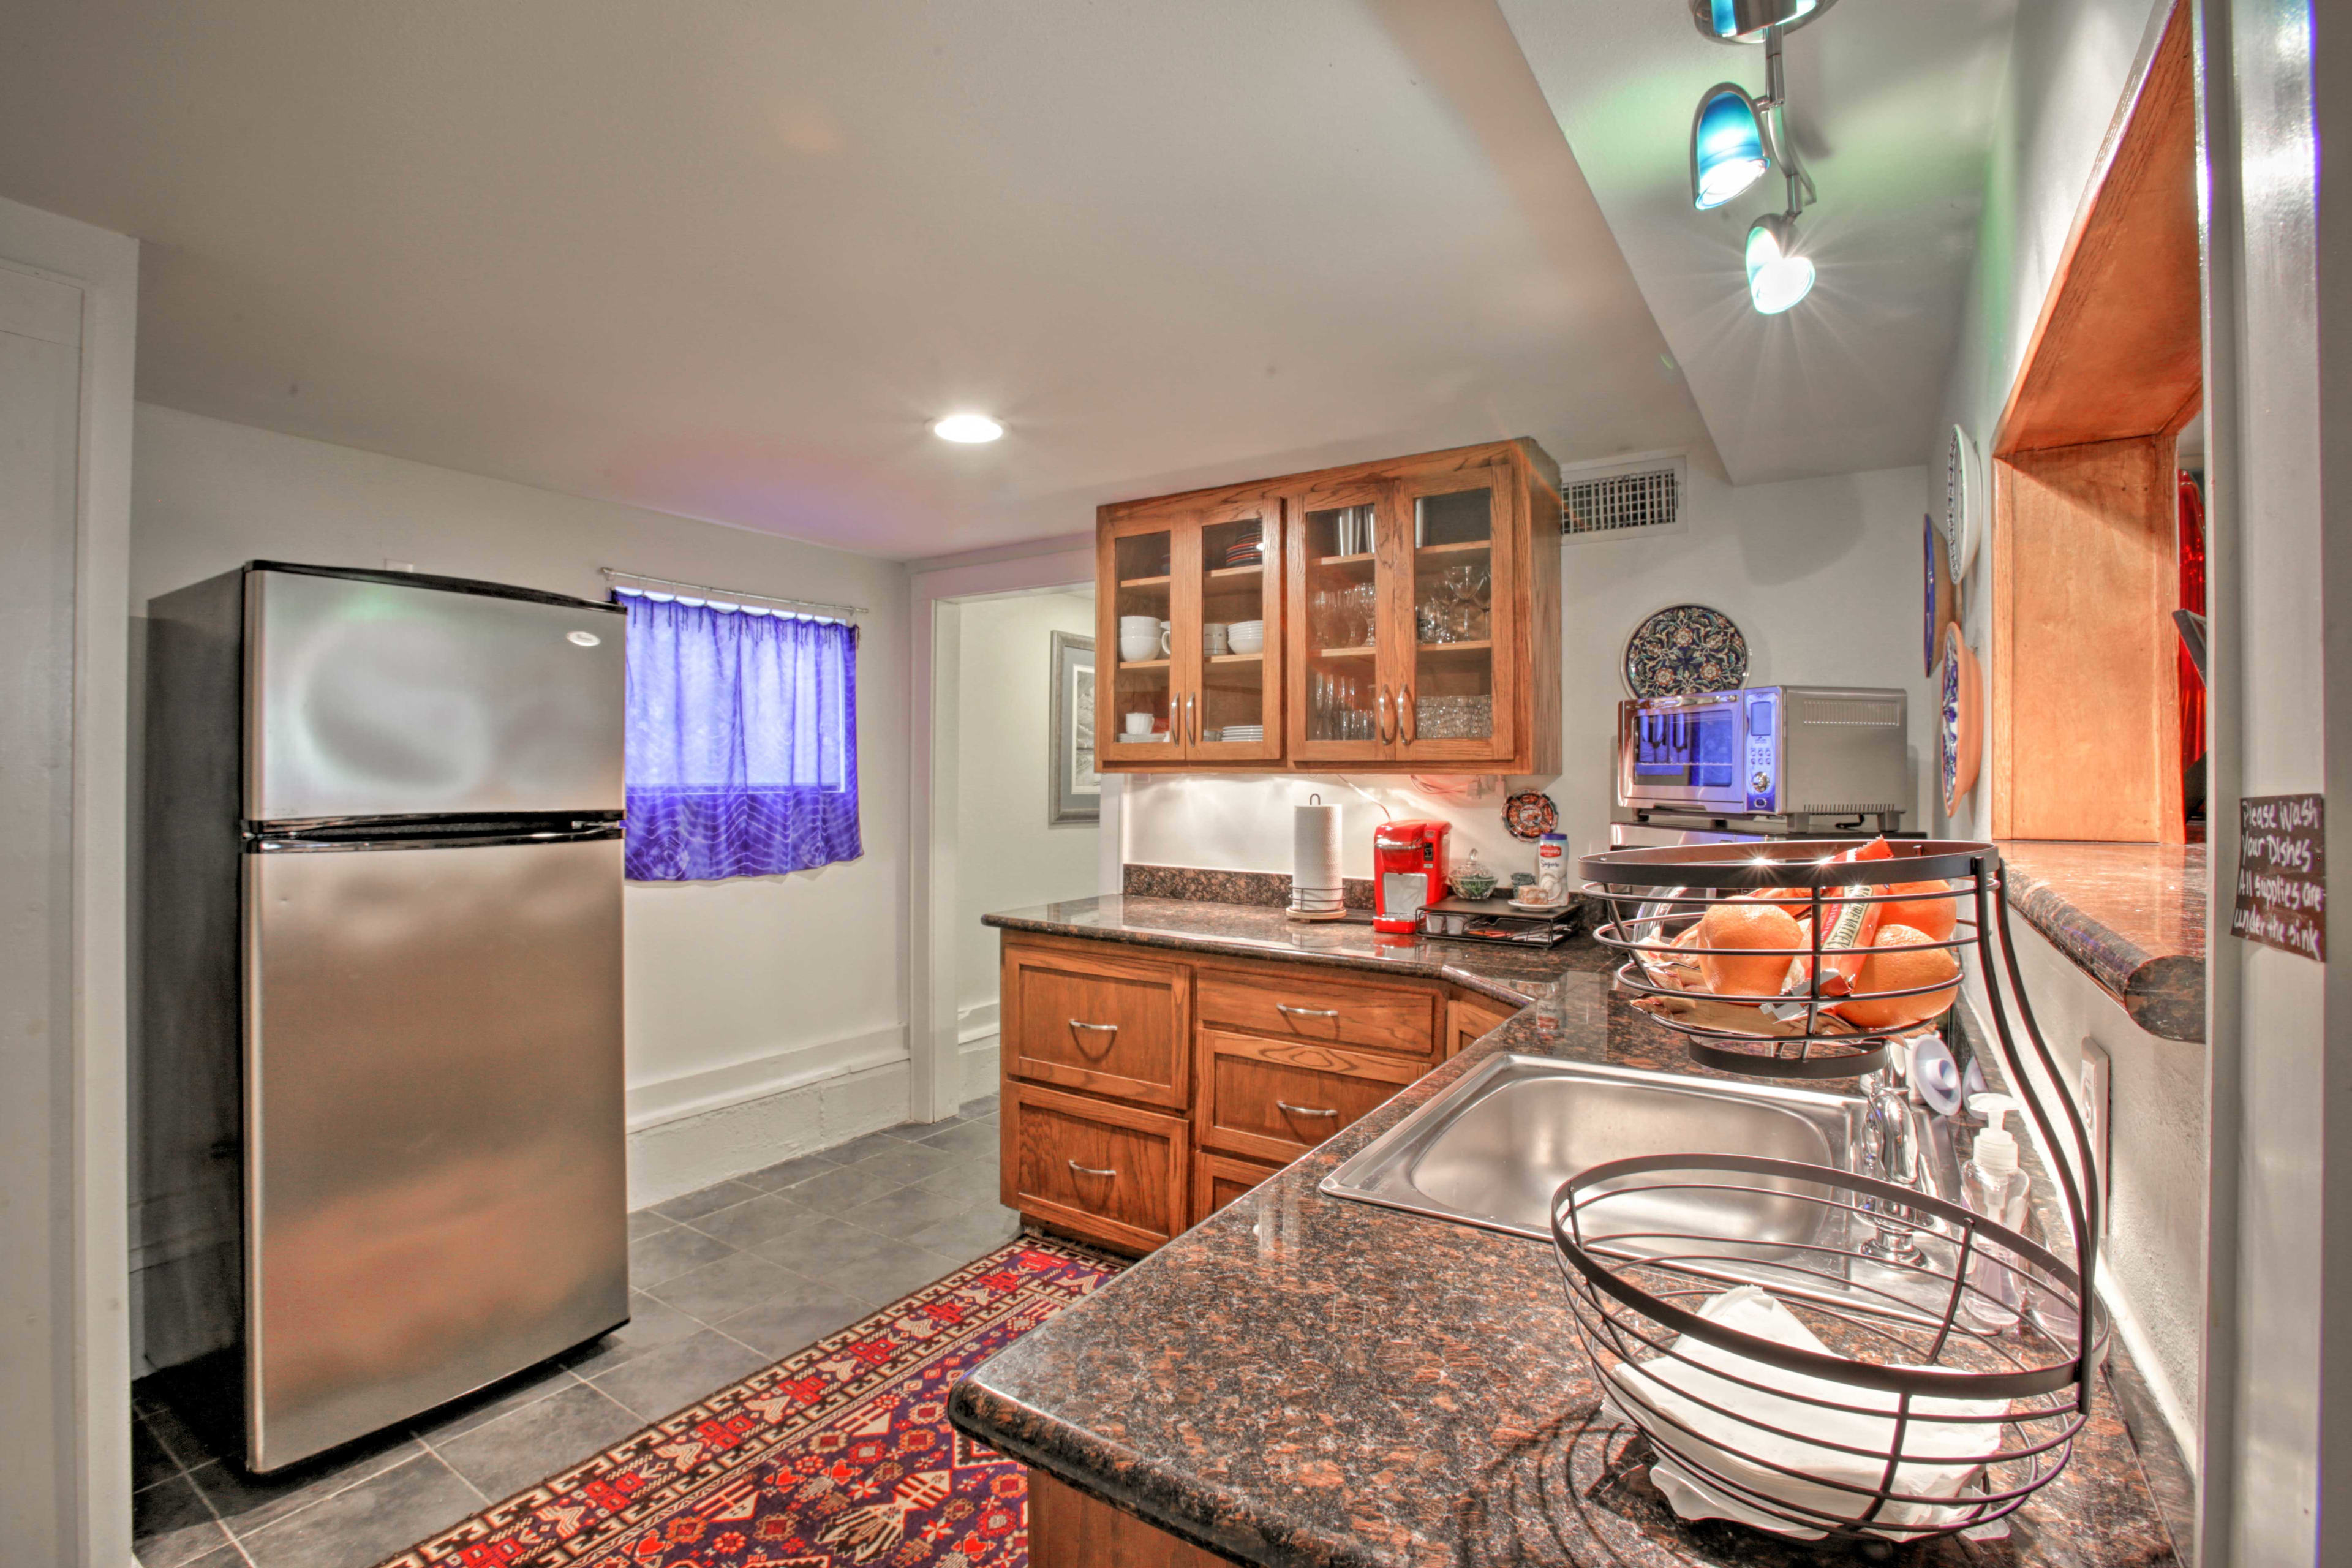 Try out a new recipe in the well-equipped kitchenette.